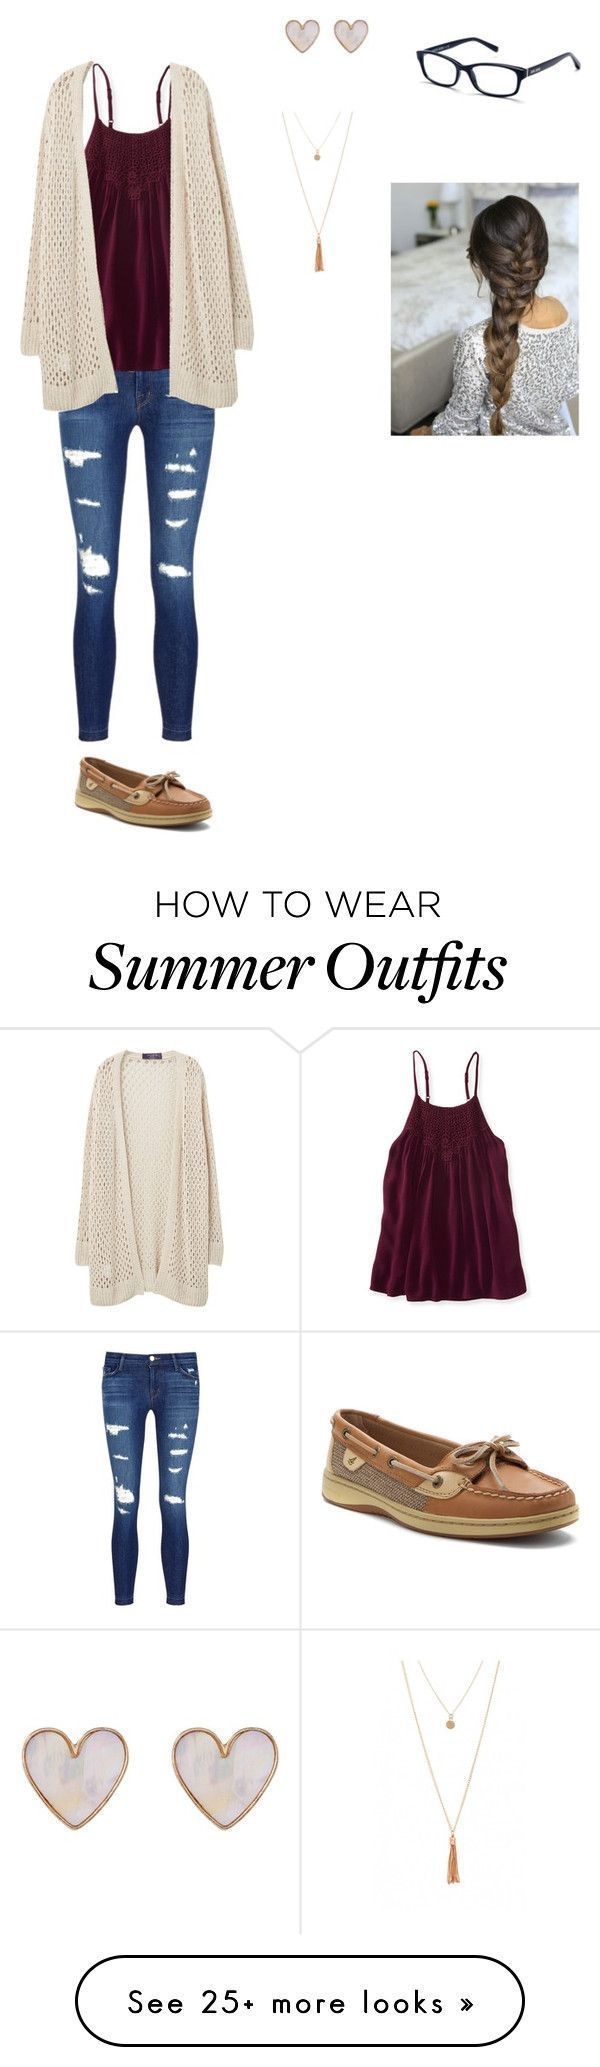 "Summer outfits : ""school outfit #10"" by aprylbrown on polyvore – School outfits spring j brand"